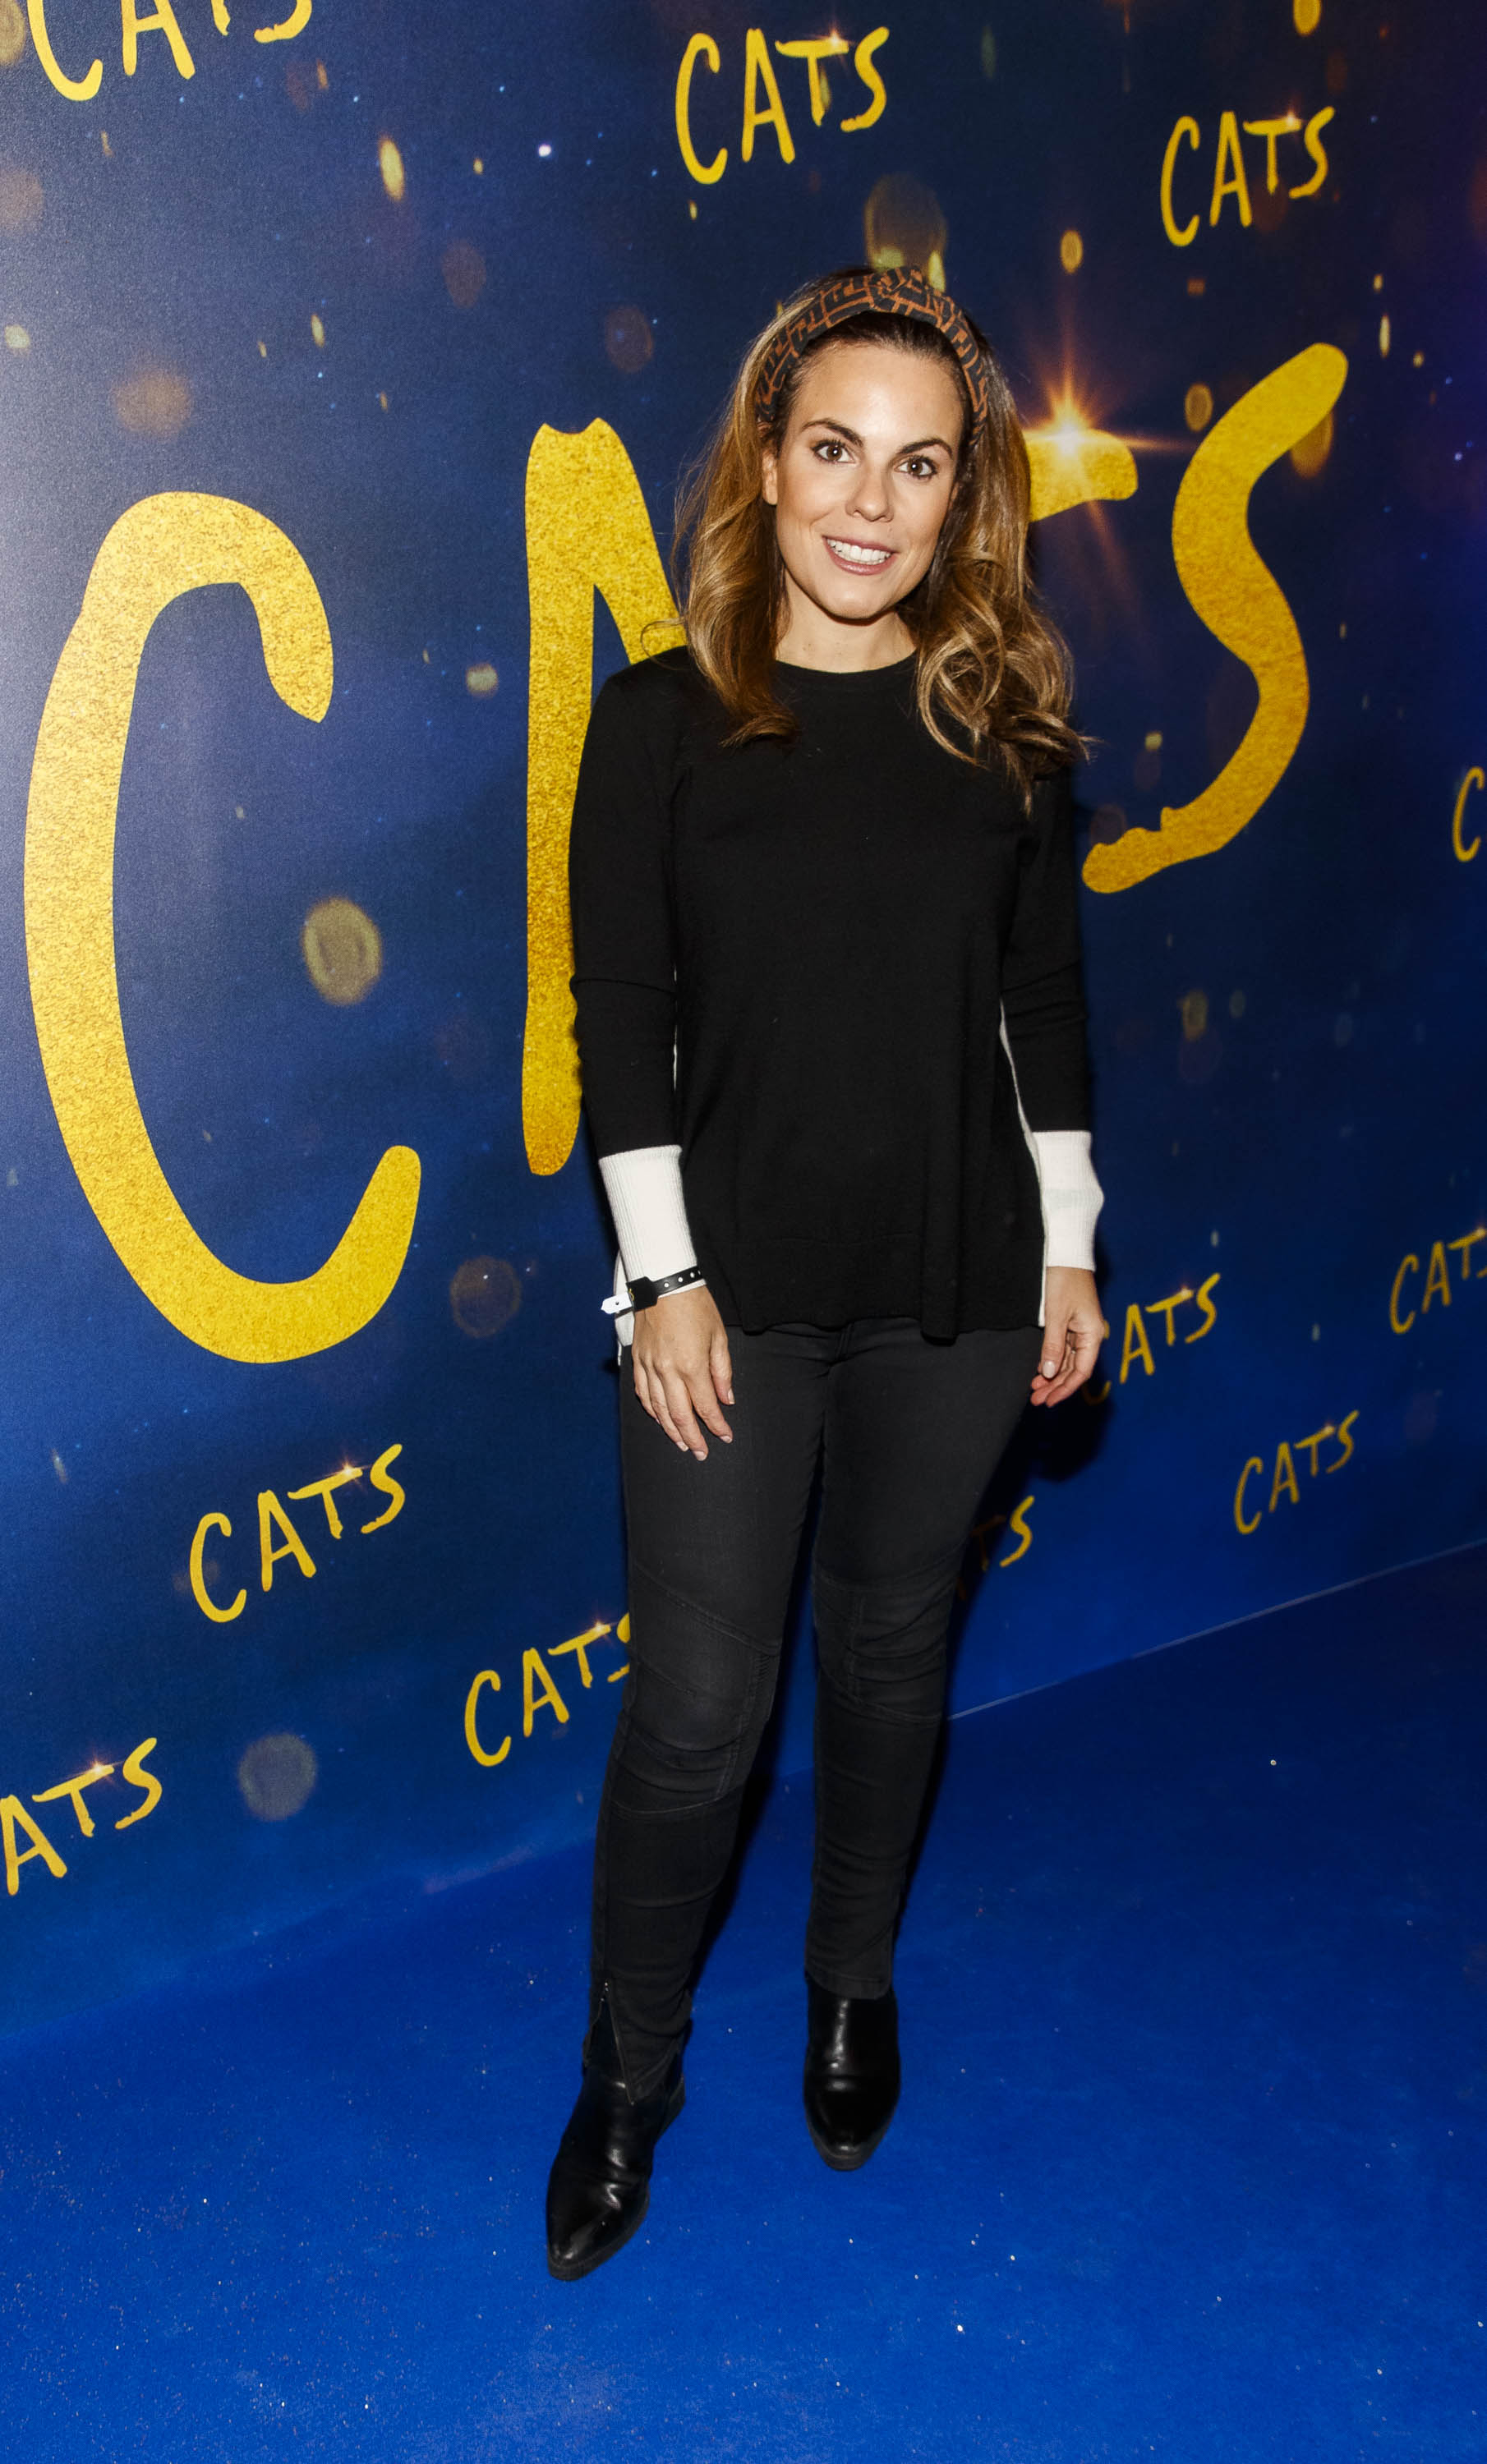 Avila Lipsett pictured at the Irish premiere screening of 'Cats' at The Stella Theatre, Rathmines. Picture: Andres Poveda